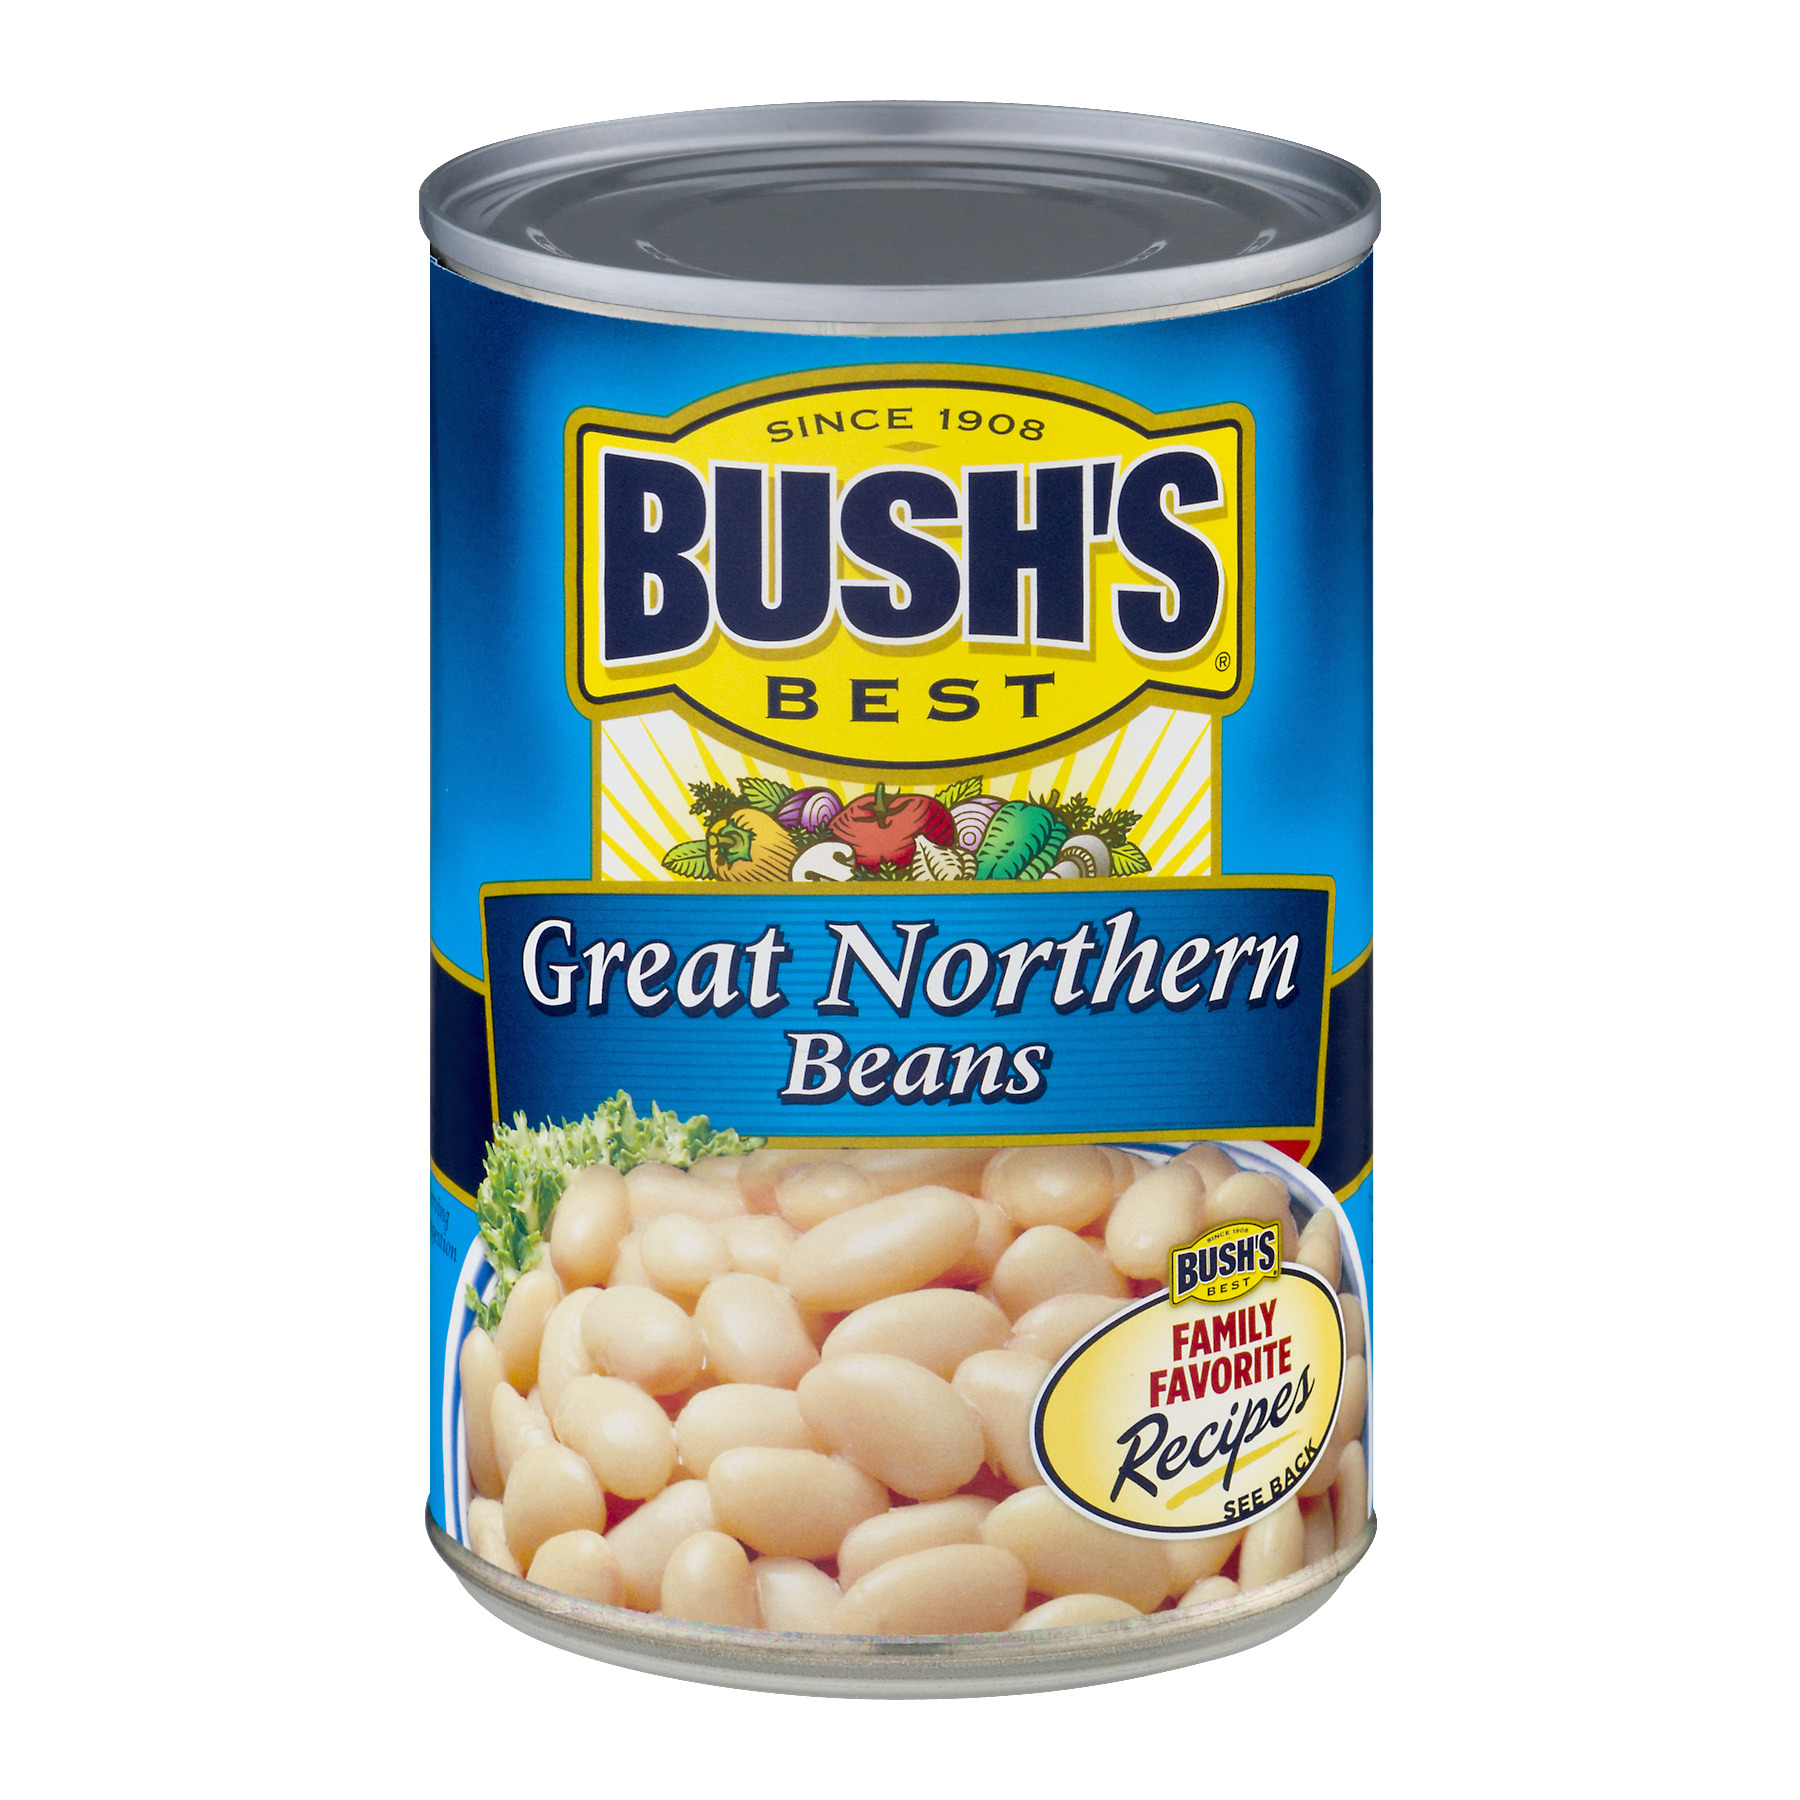 BUSH'S BEST Great Northern Beans, 15.8 OZ